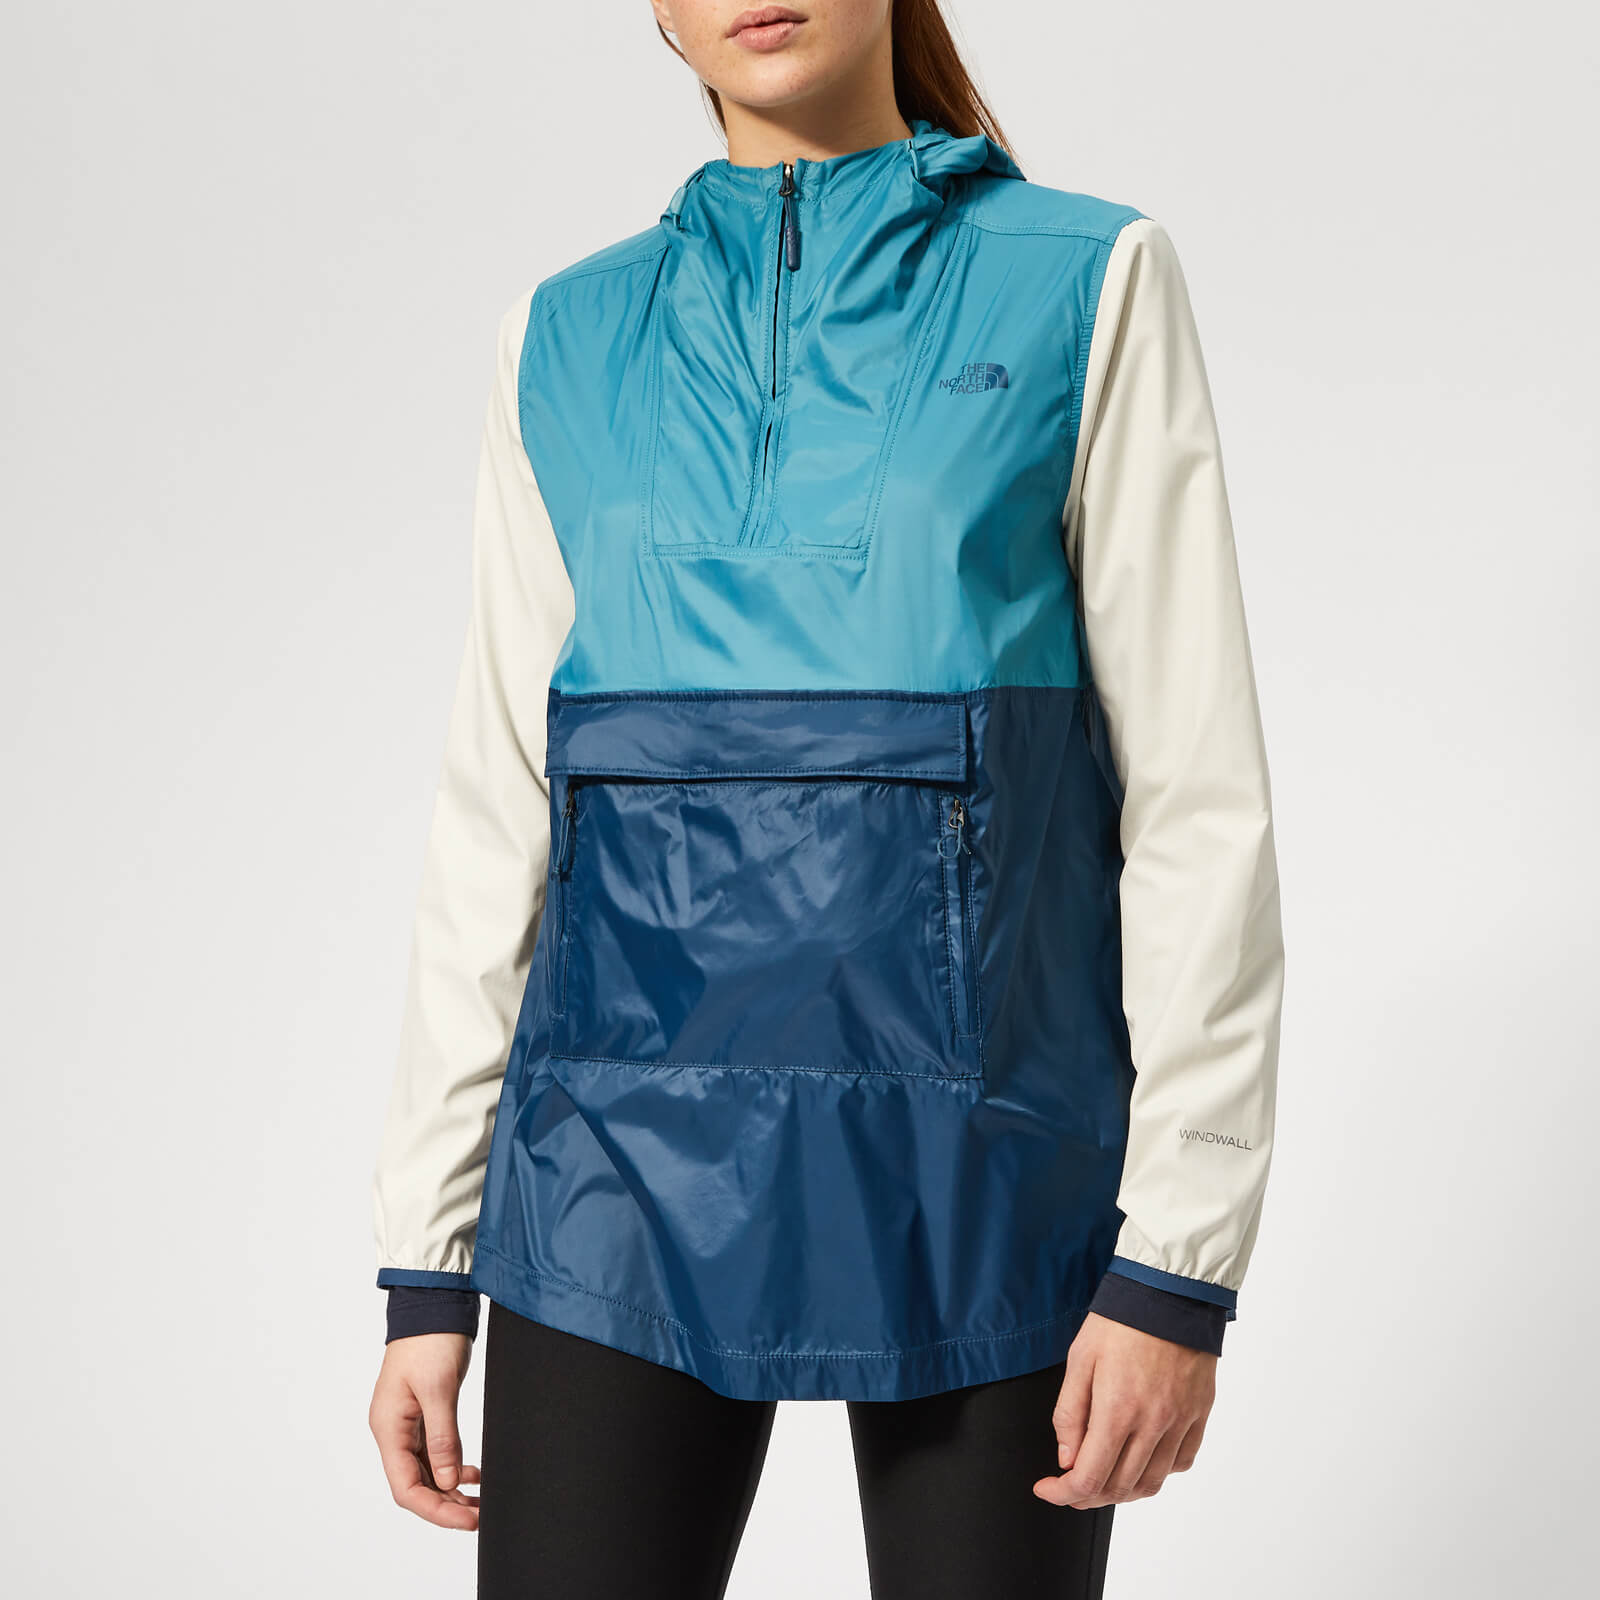 5cf8a112067 The North Face Women's Fanorak 2.0 Jacket - Storm Blue Multi Womens Clothing  | TheHut.com